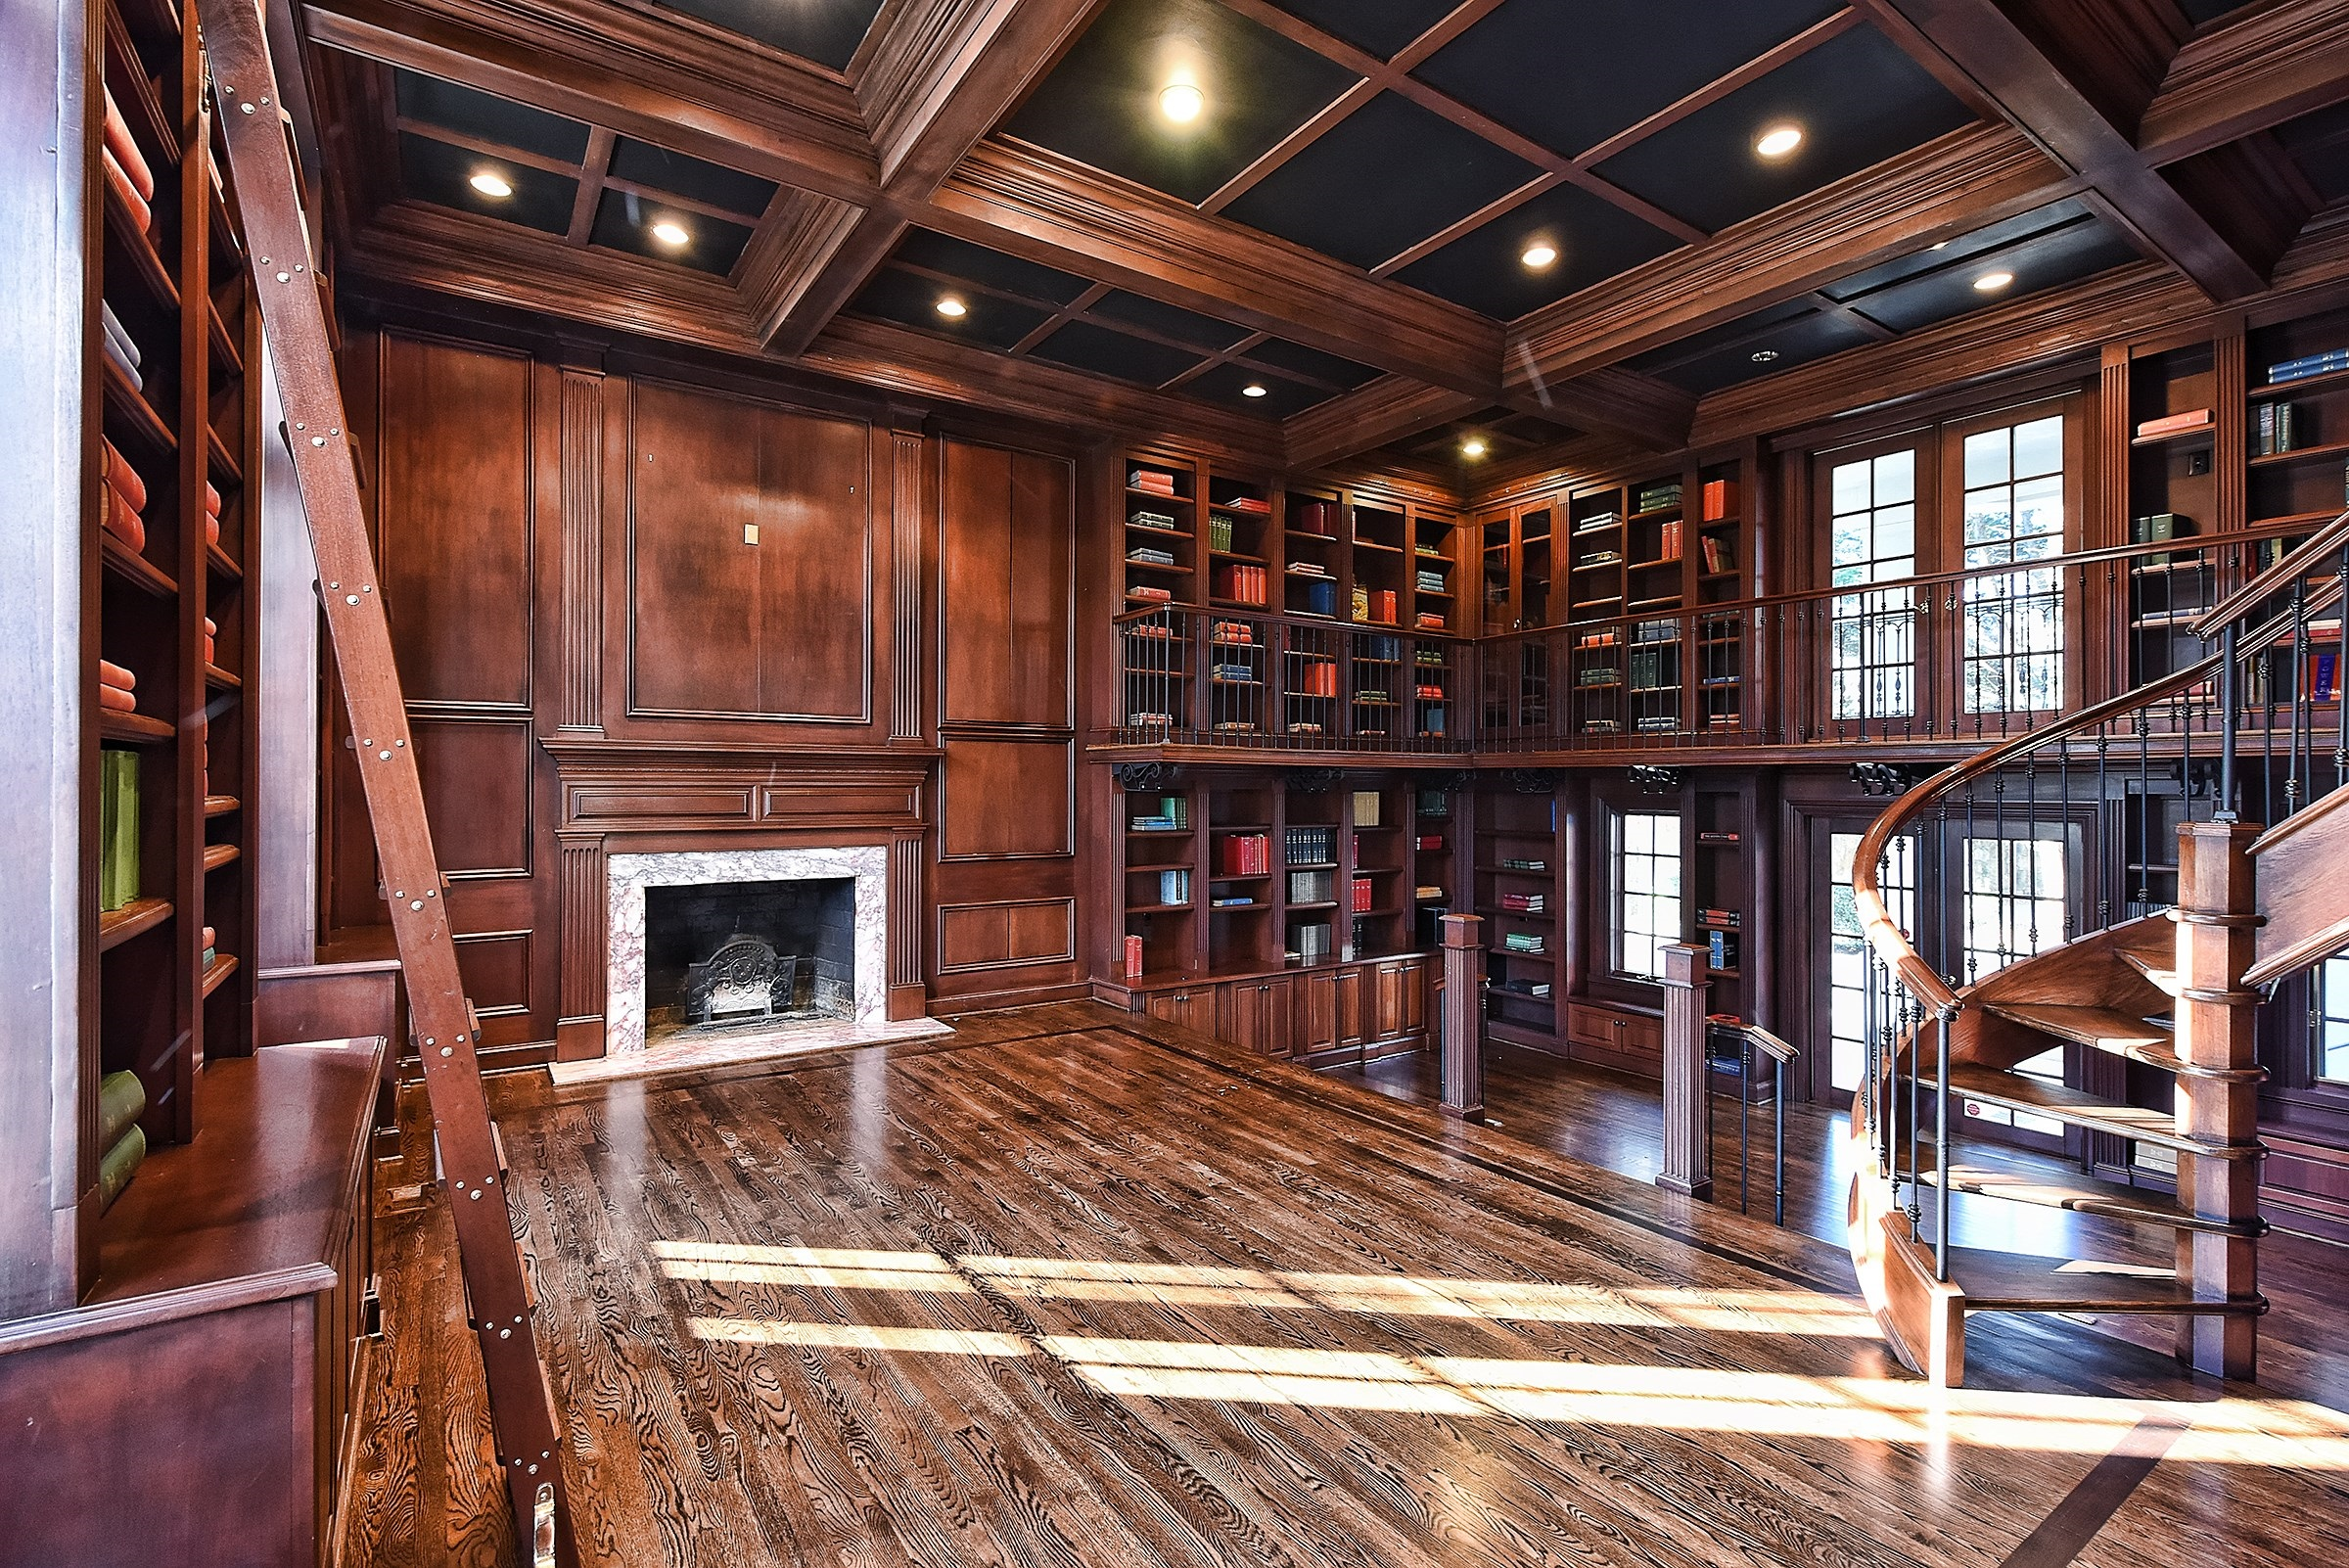 The mahogany walls, stairs, shelving, and ceiling in this grand library bring to mind comfort-rich reading rooms of old.